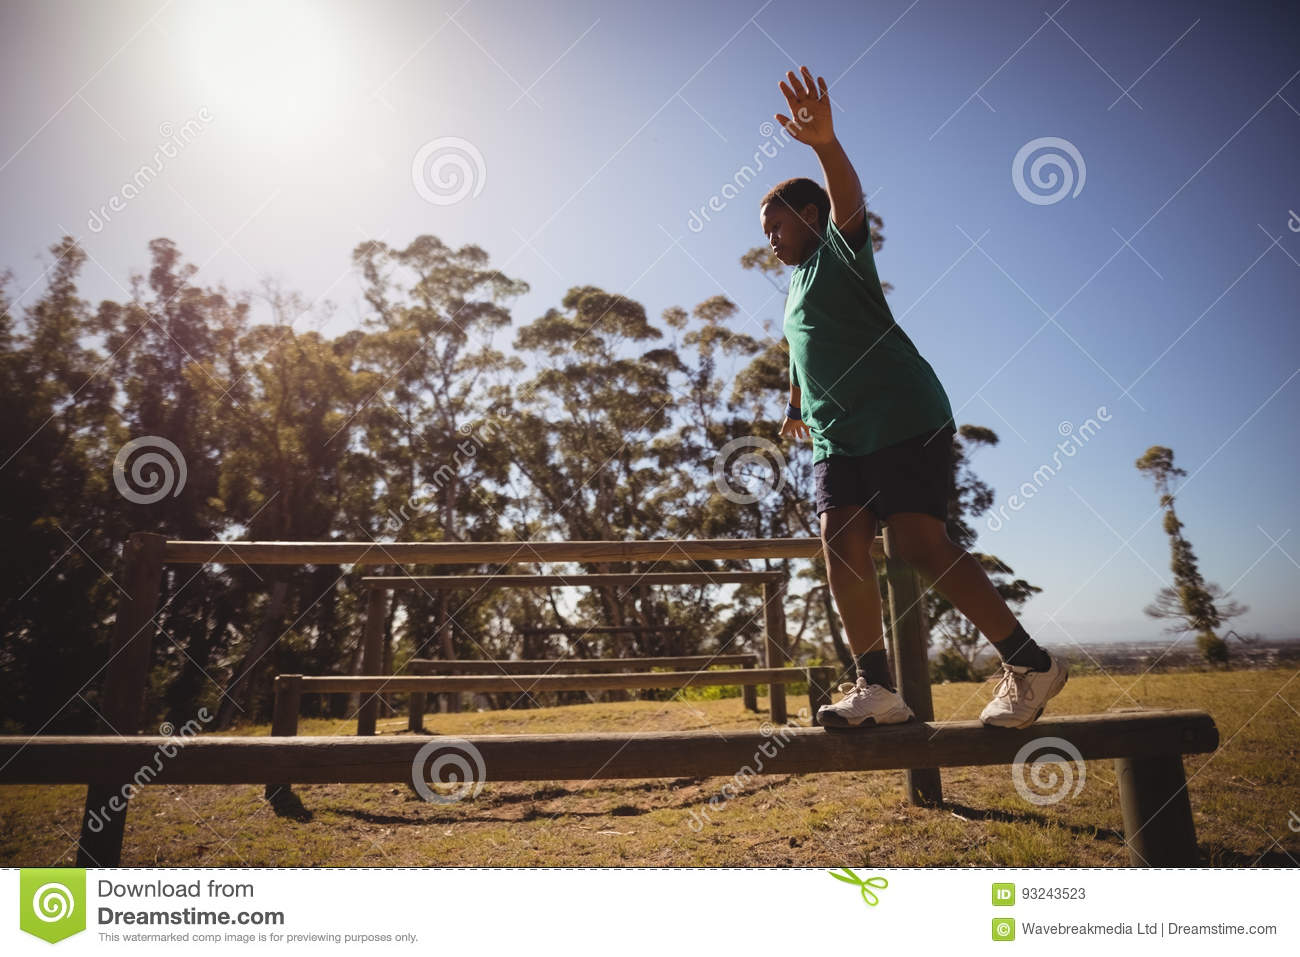 Boy walking on obstacle during obstacle course